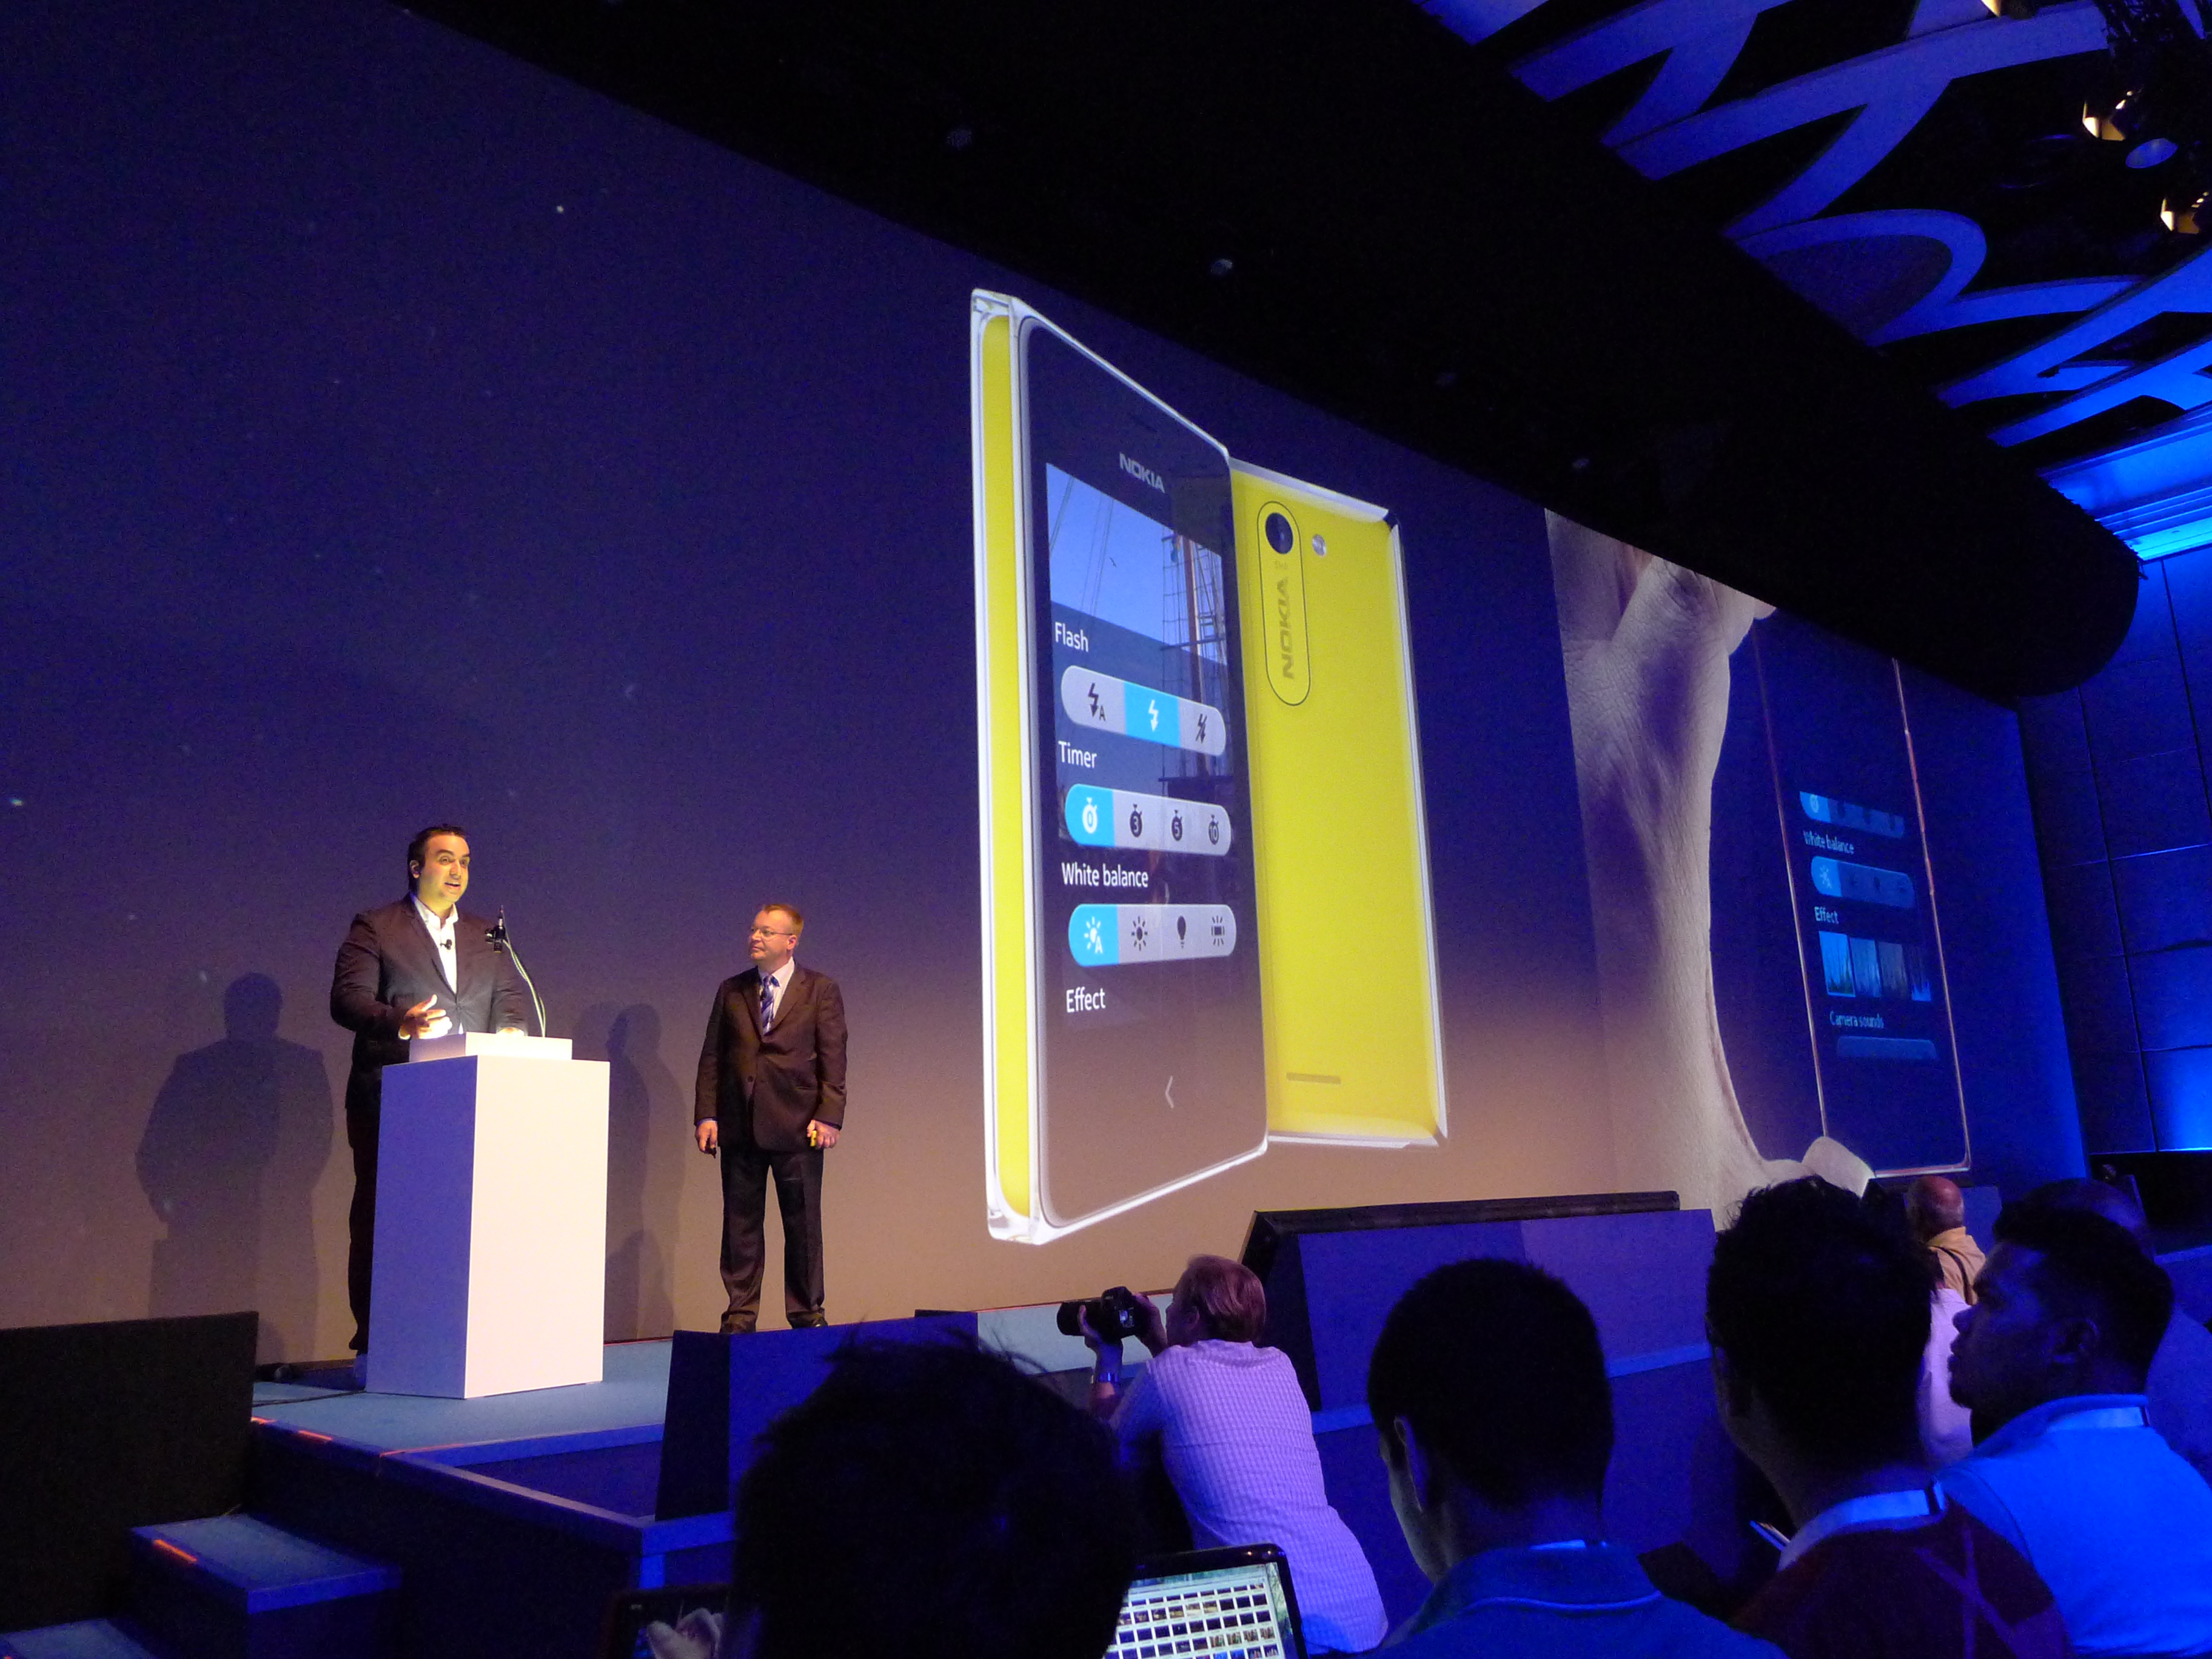 P1040464 Nokia announces Asha 500 for $69, Asha 502 for $89, and Asha 503 for $99